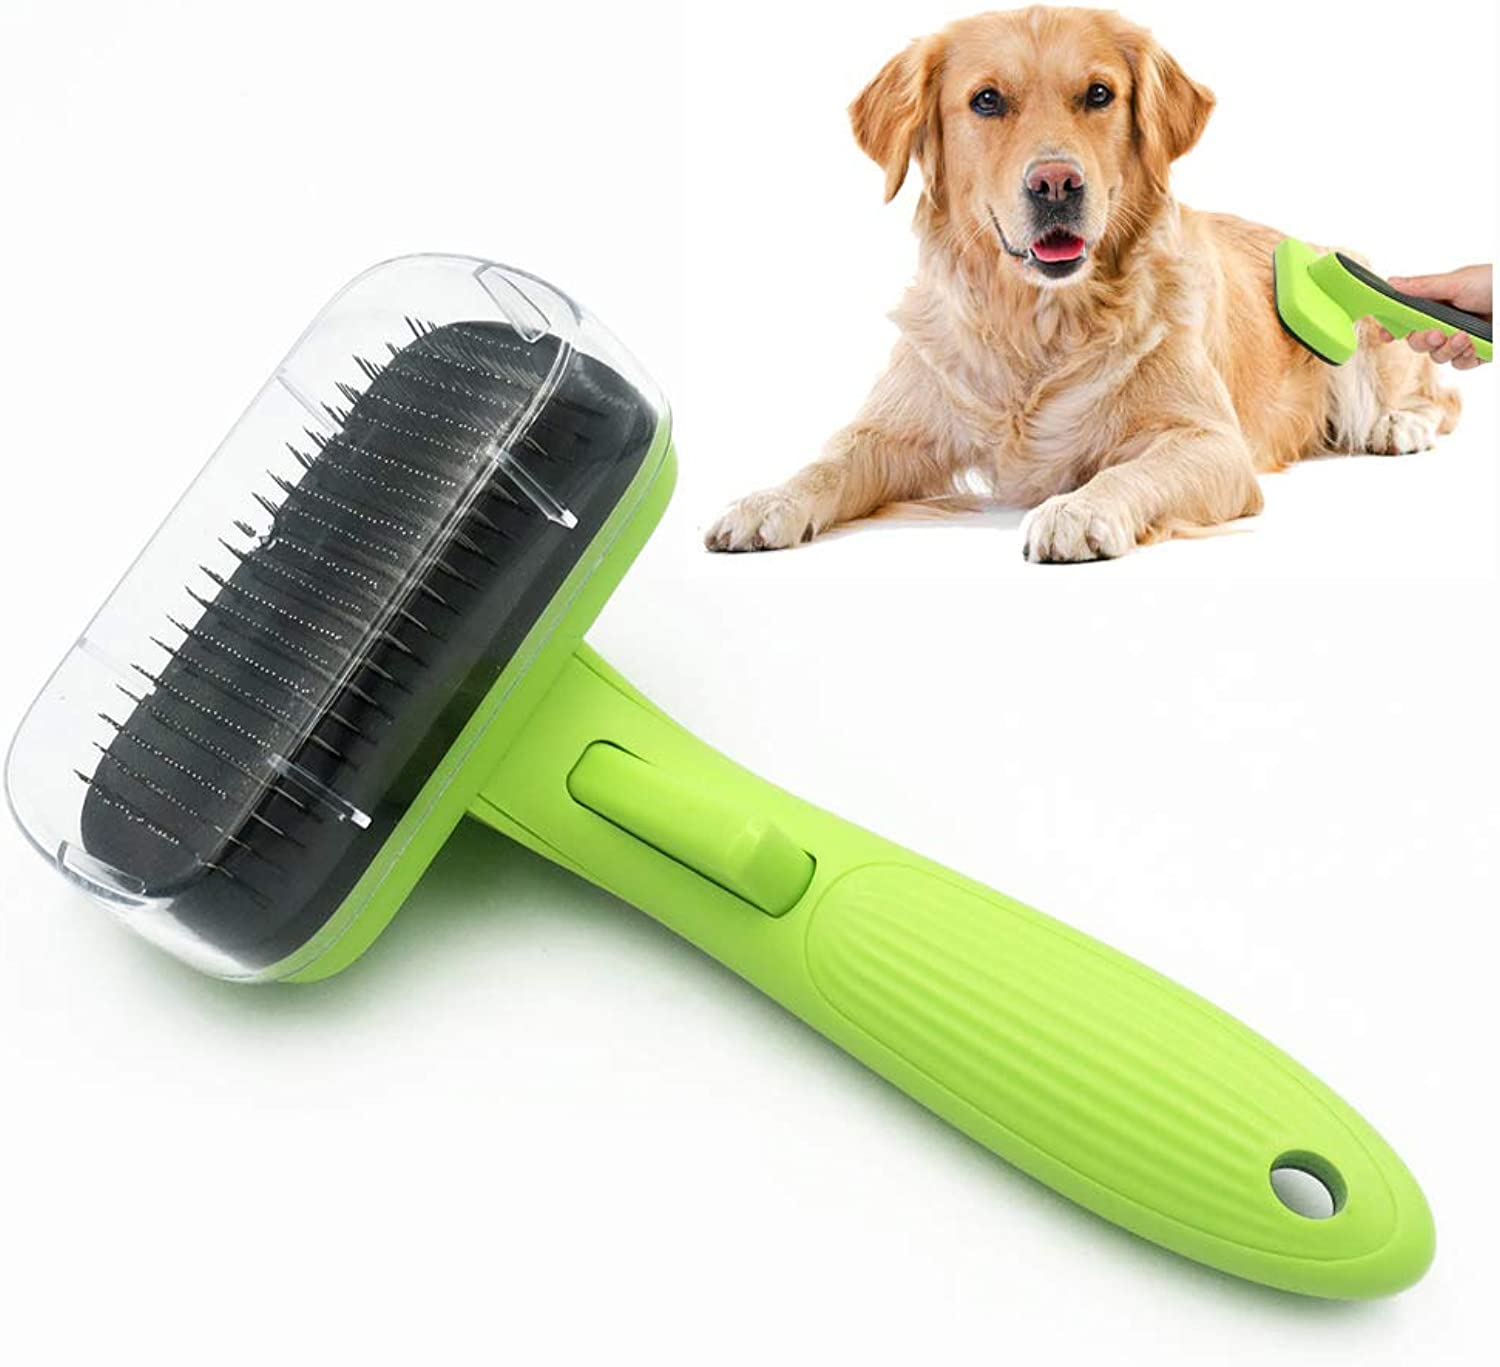 Pet Self Cleaning Slicker Brush, Dog Deshedding Brush, Retractable, Easy Clean,for Large to Small Dog or Cat with Short to Long Hair[2pcs]